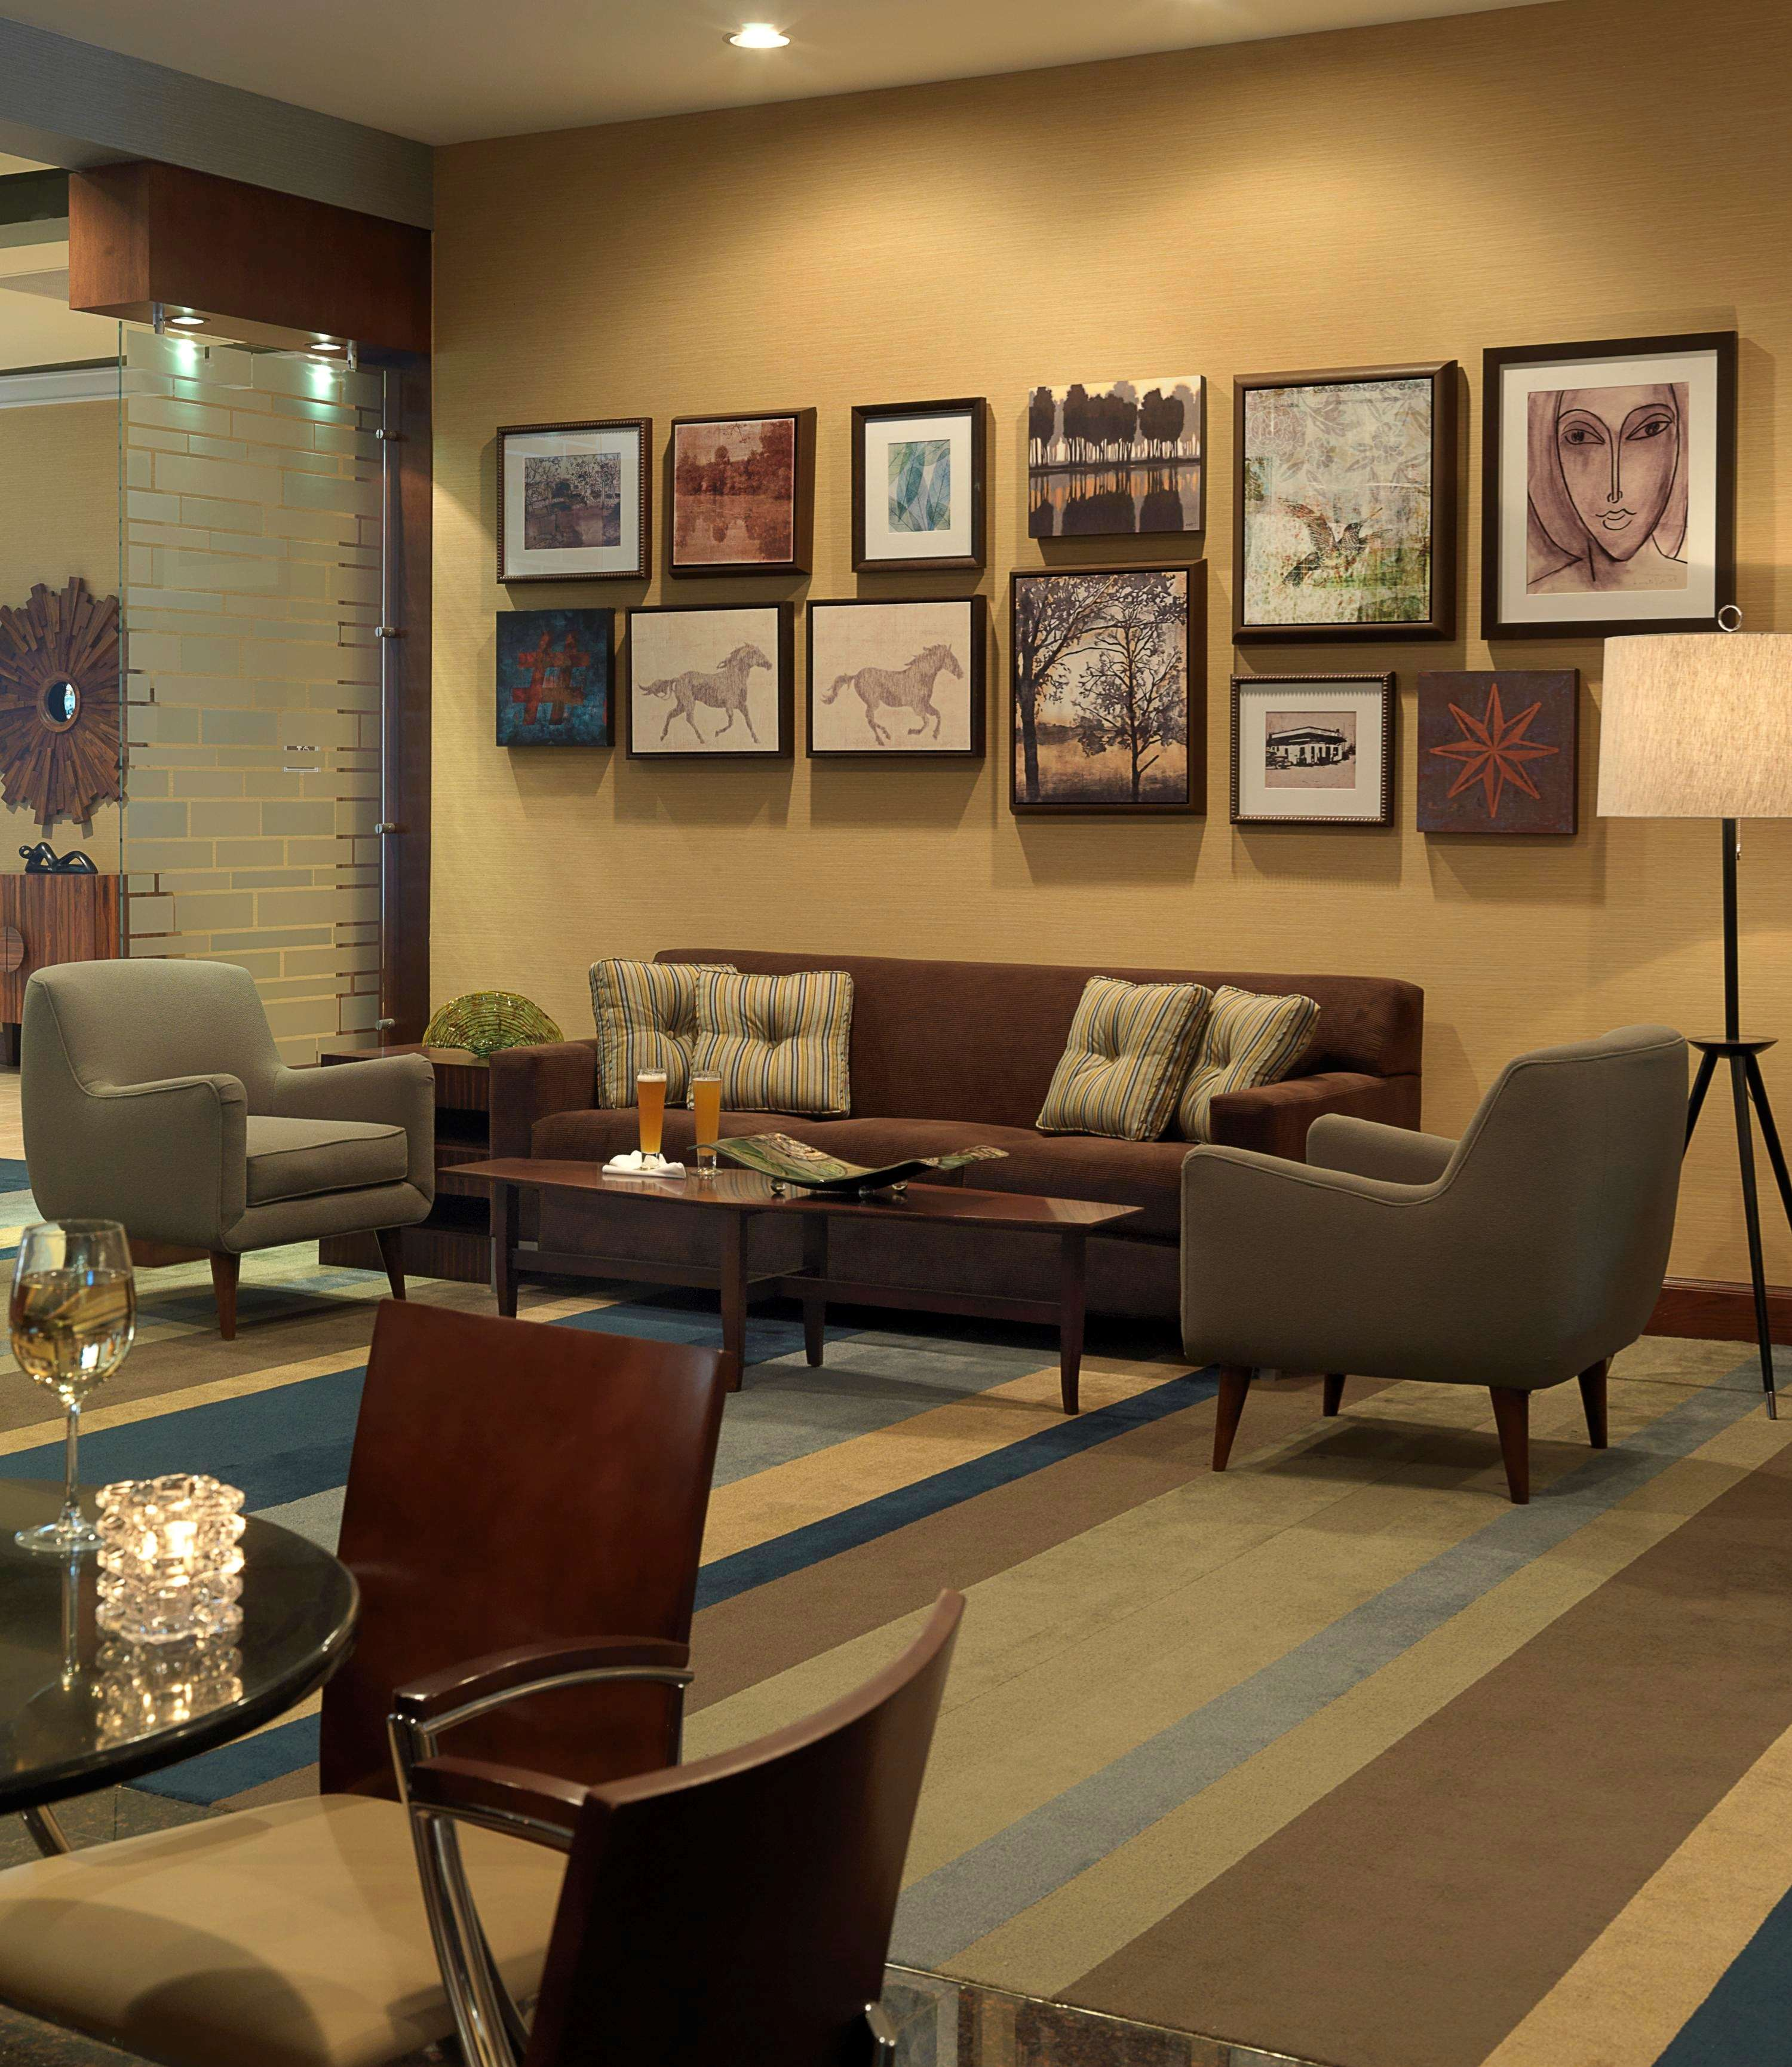 DoubleTree by Hilton Hotel Collinsville - St. Louis image 3